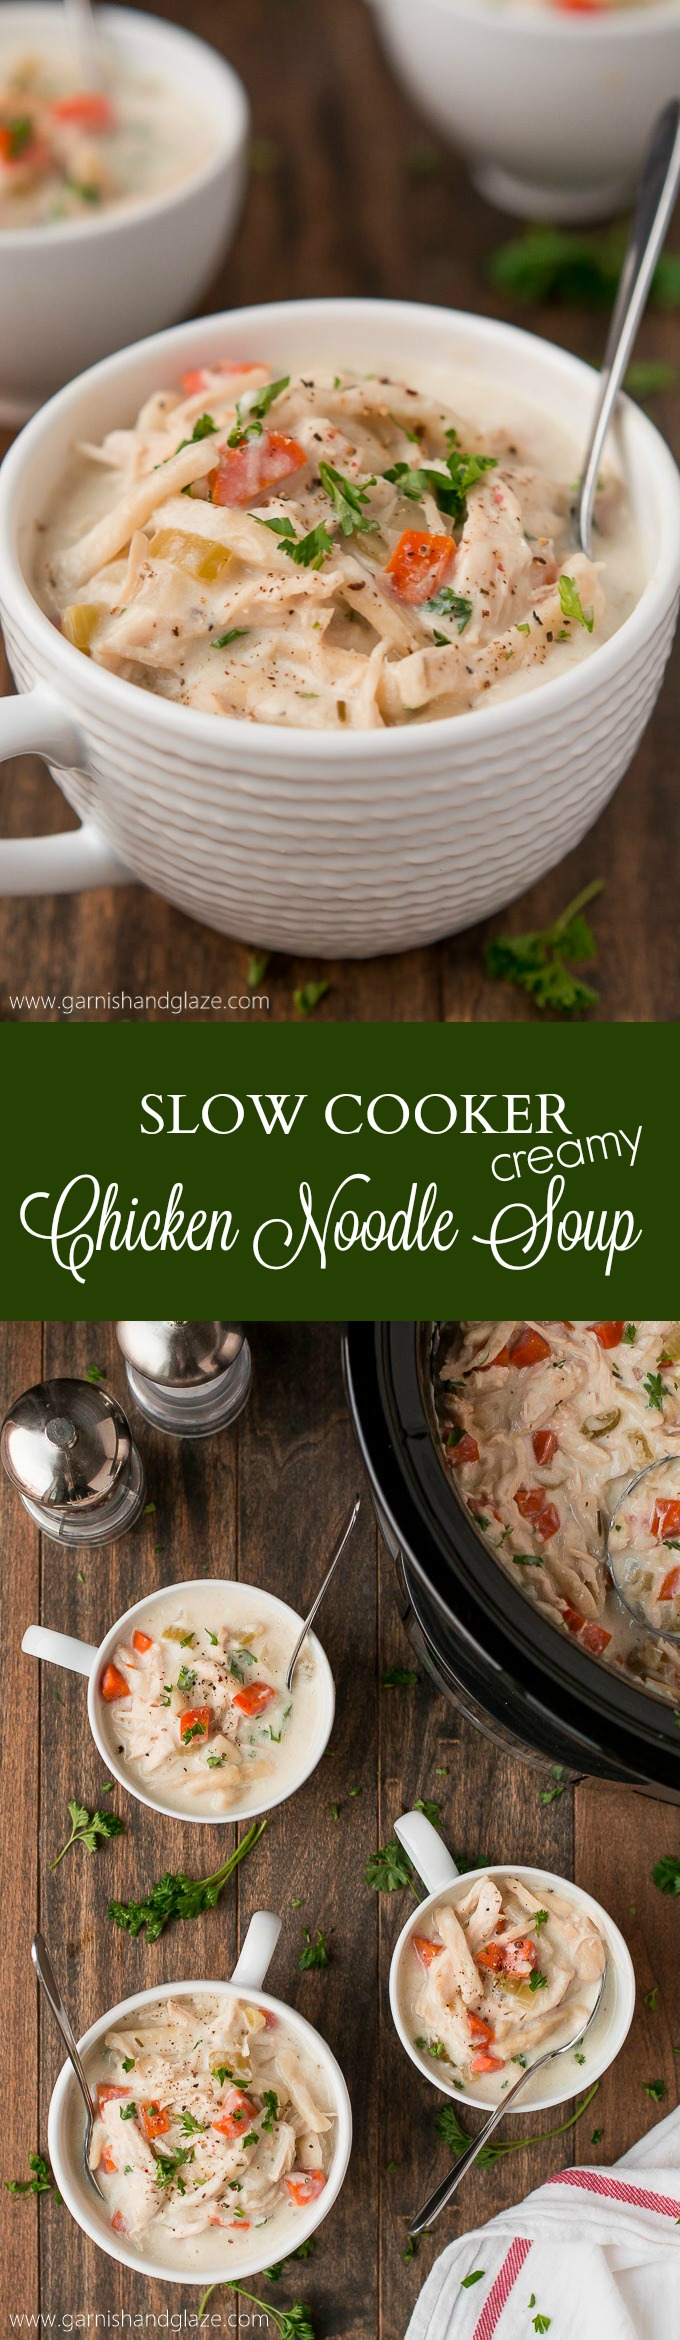 Add a little bit of homemade goodness to your life with this Slow Cooker Creamy Chicken Noodle Soup!#Reames #HomemadeGoodness #ad